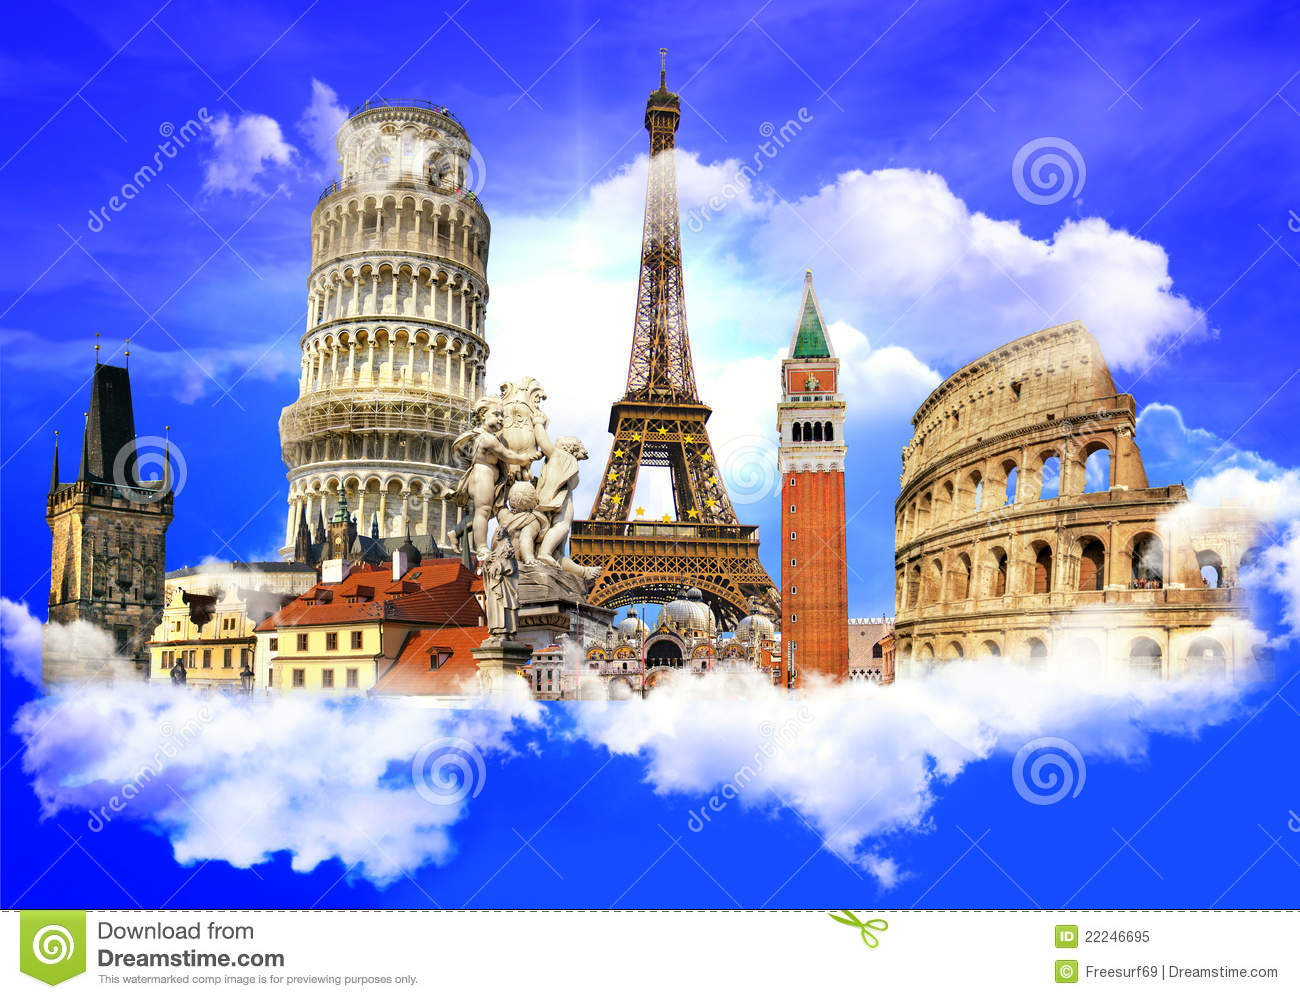 European Landmarks Royalty Free Stock Photo - Image: 22246695